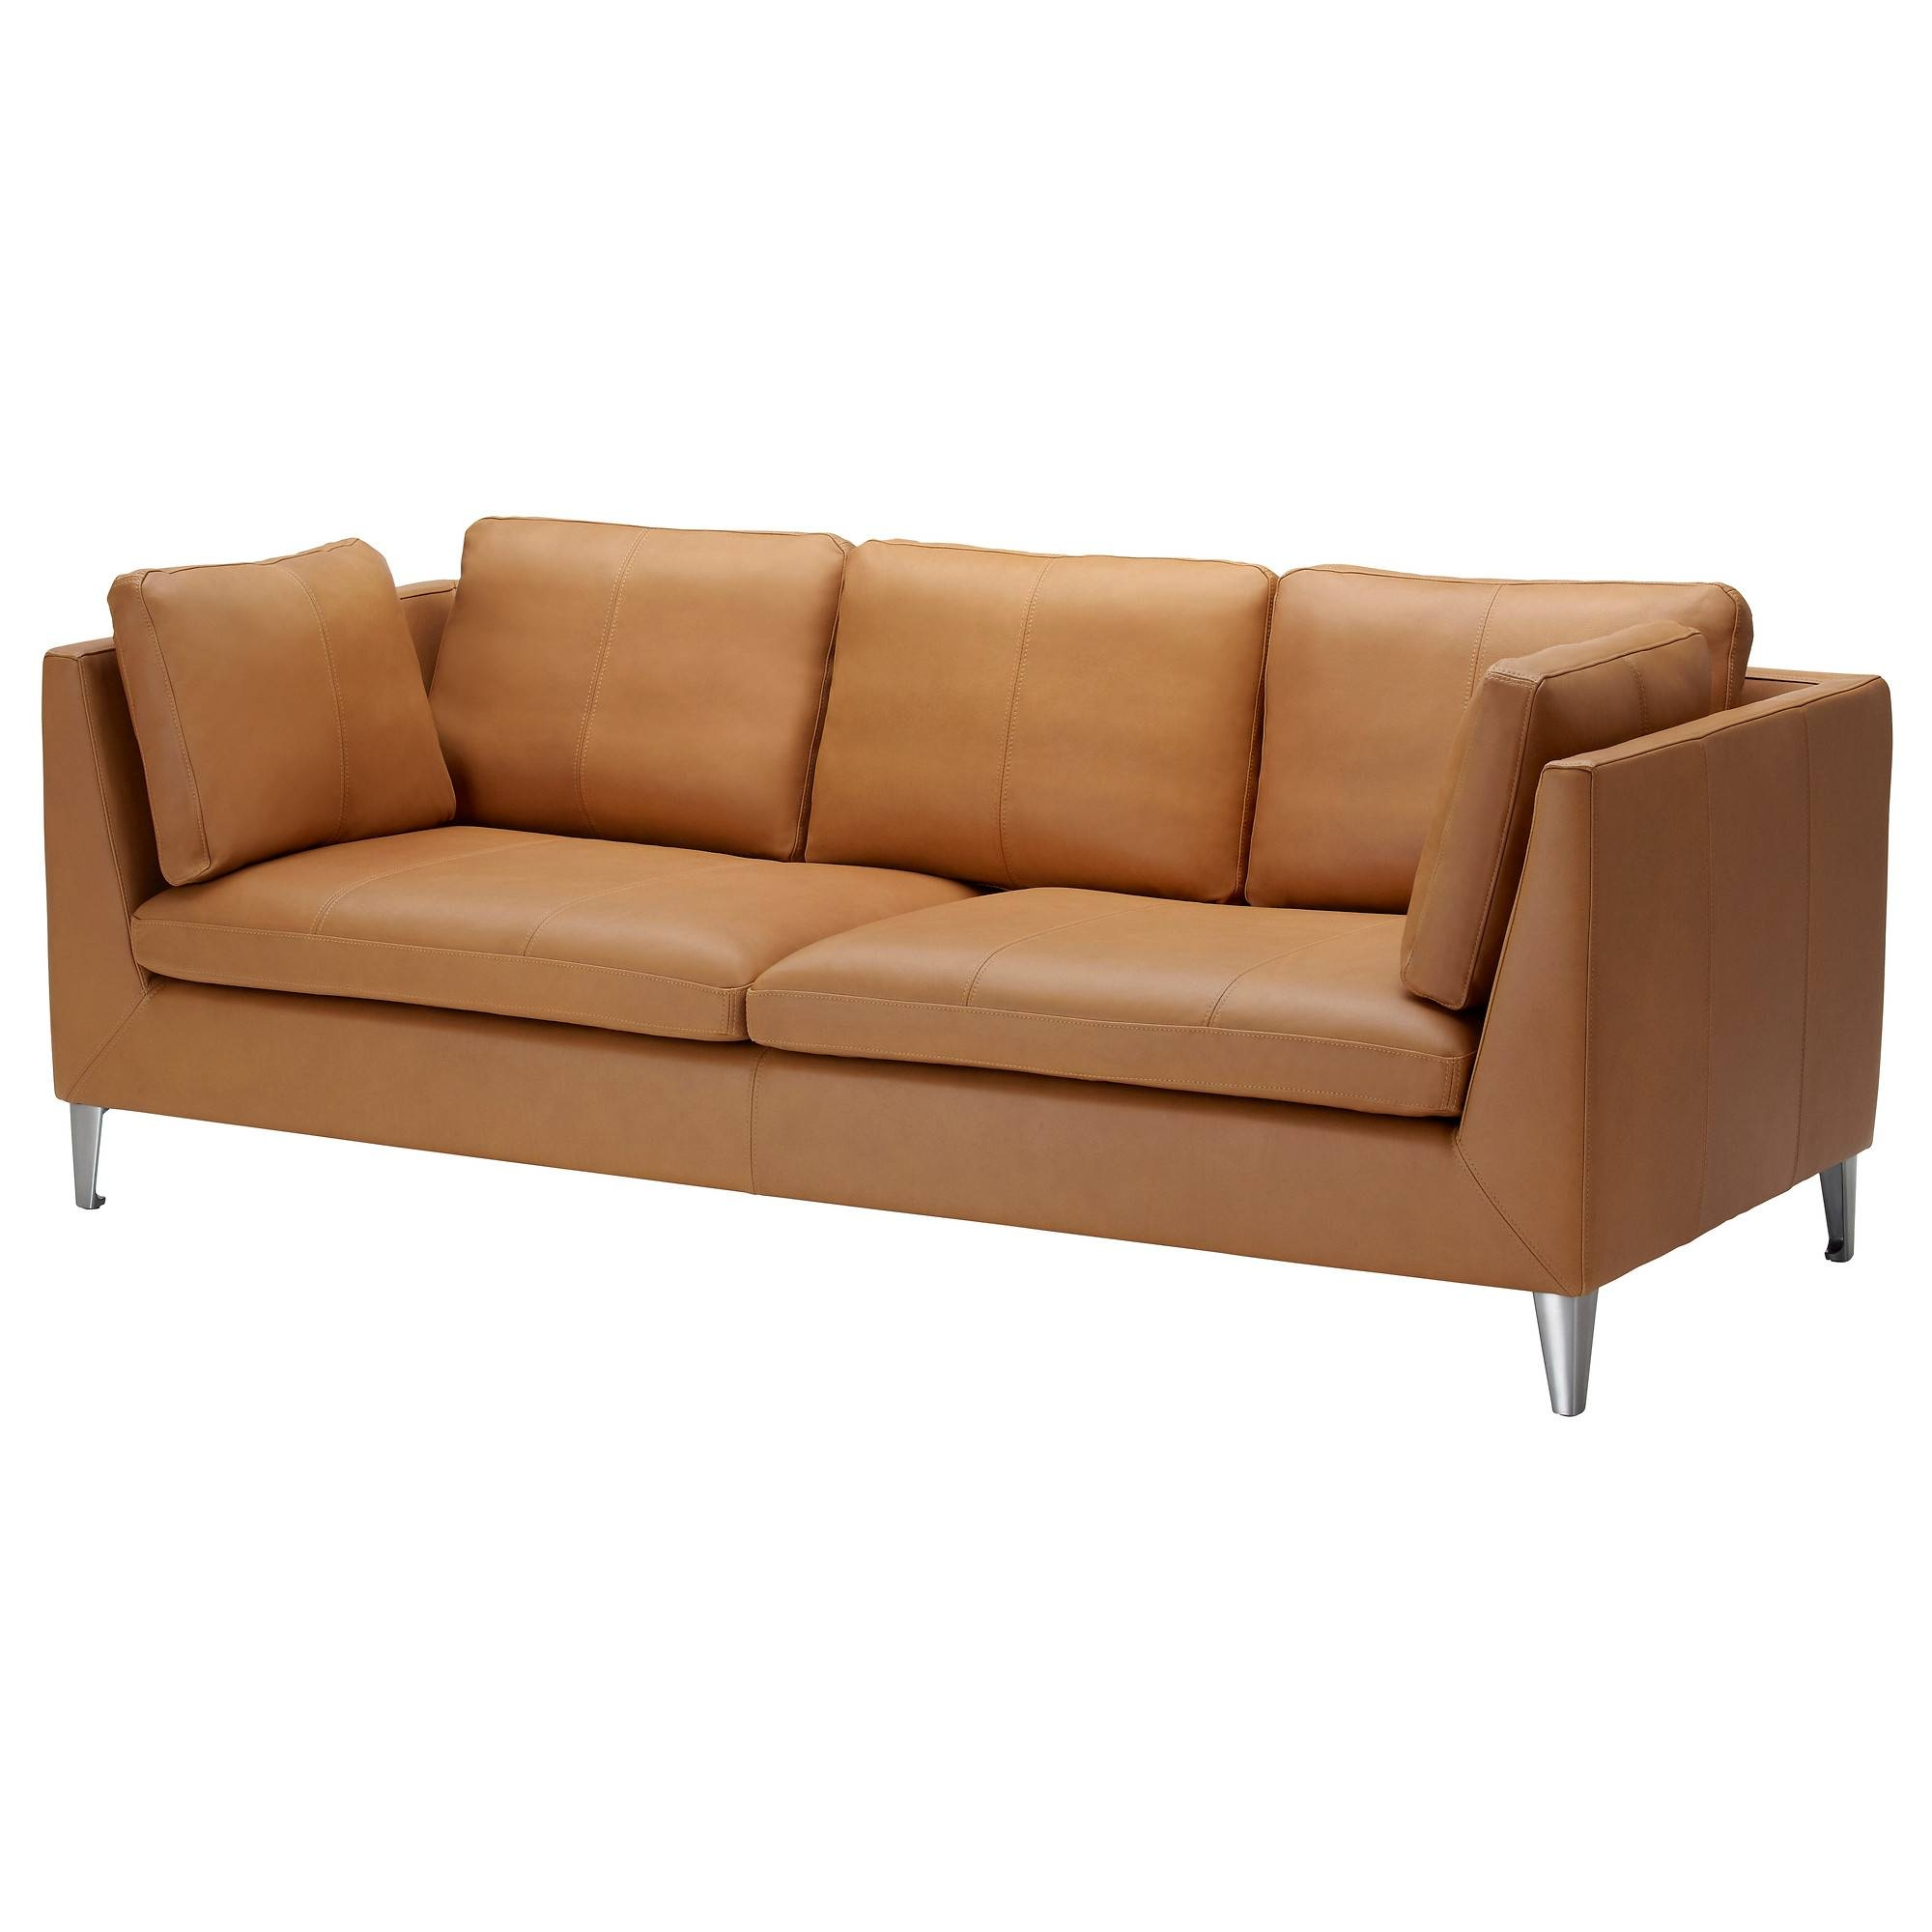 Leather & Faux Leather Couches, Chairs & Ottomans - Ikea with Pull Out Sofa Chairs (Image 16 of 30)